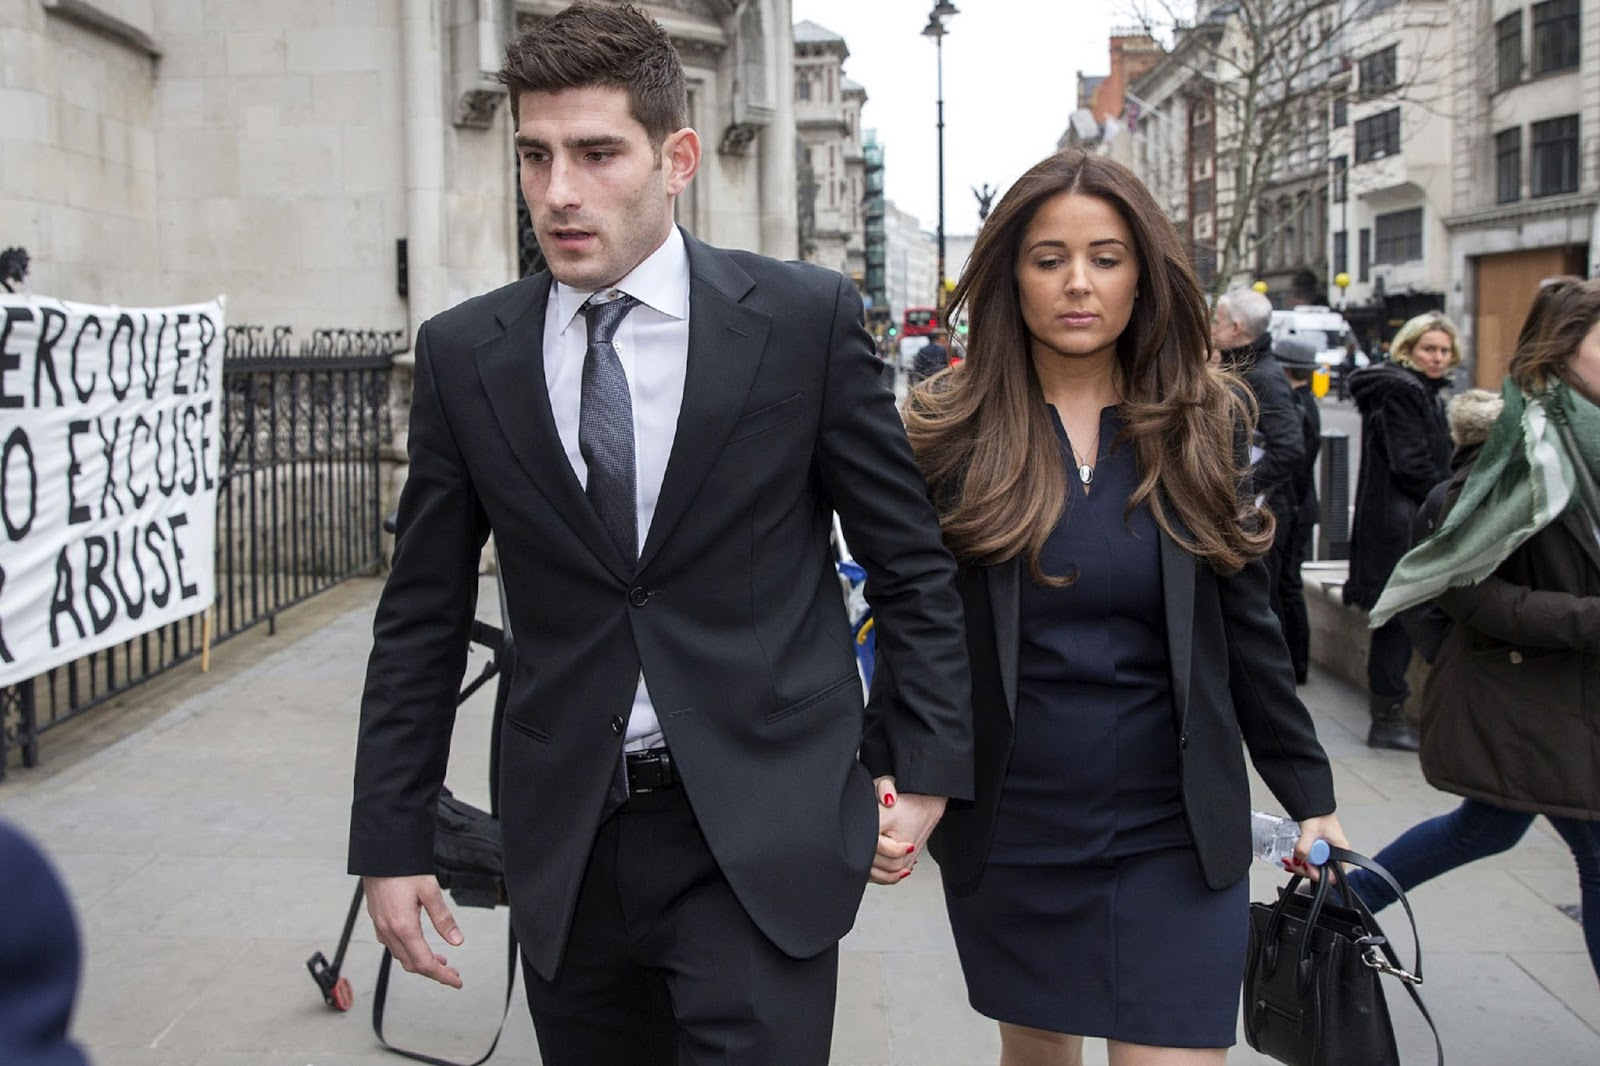 CHED EVANS 9